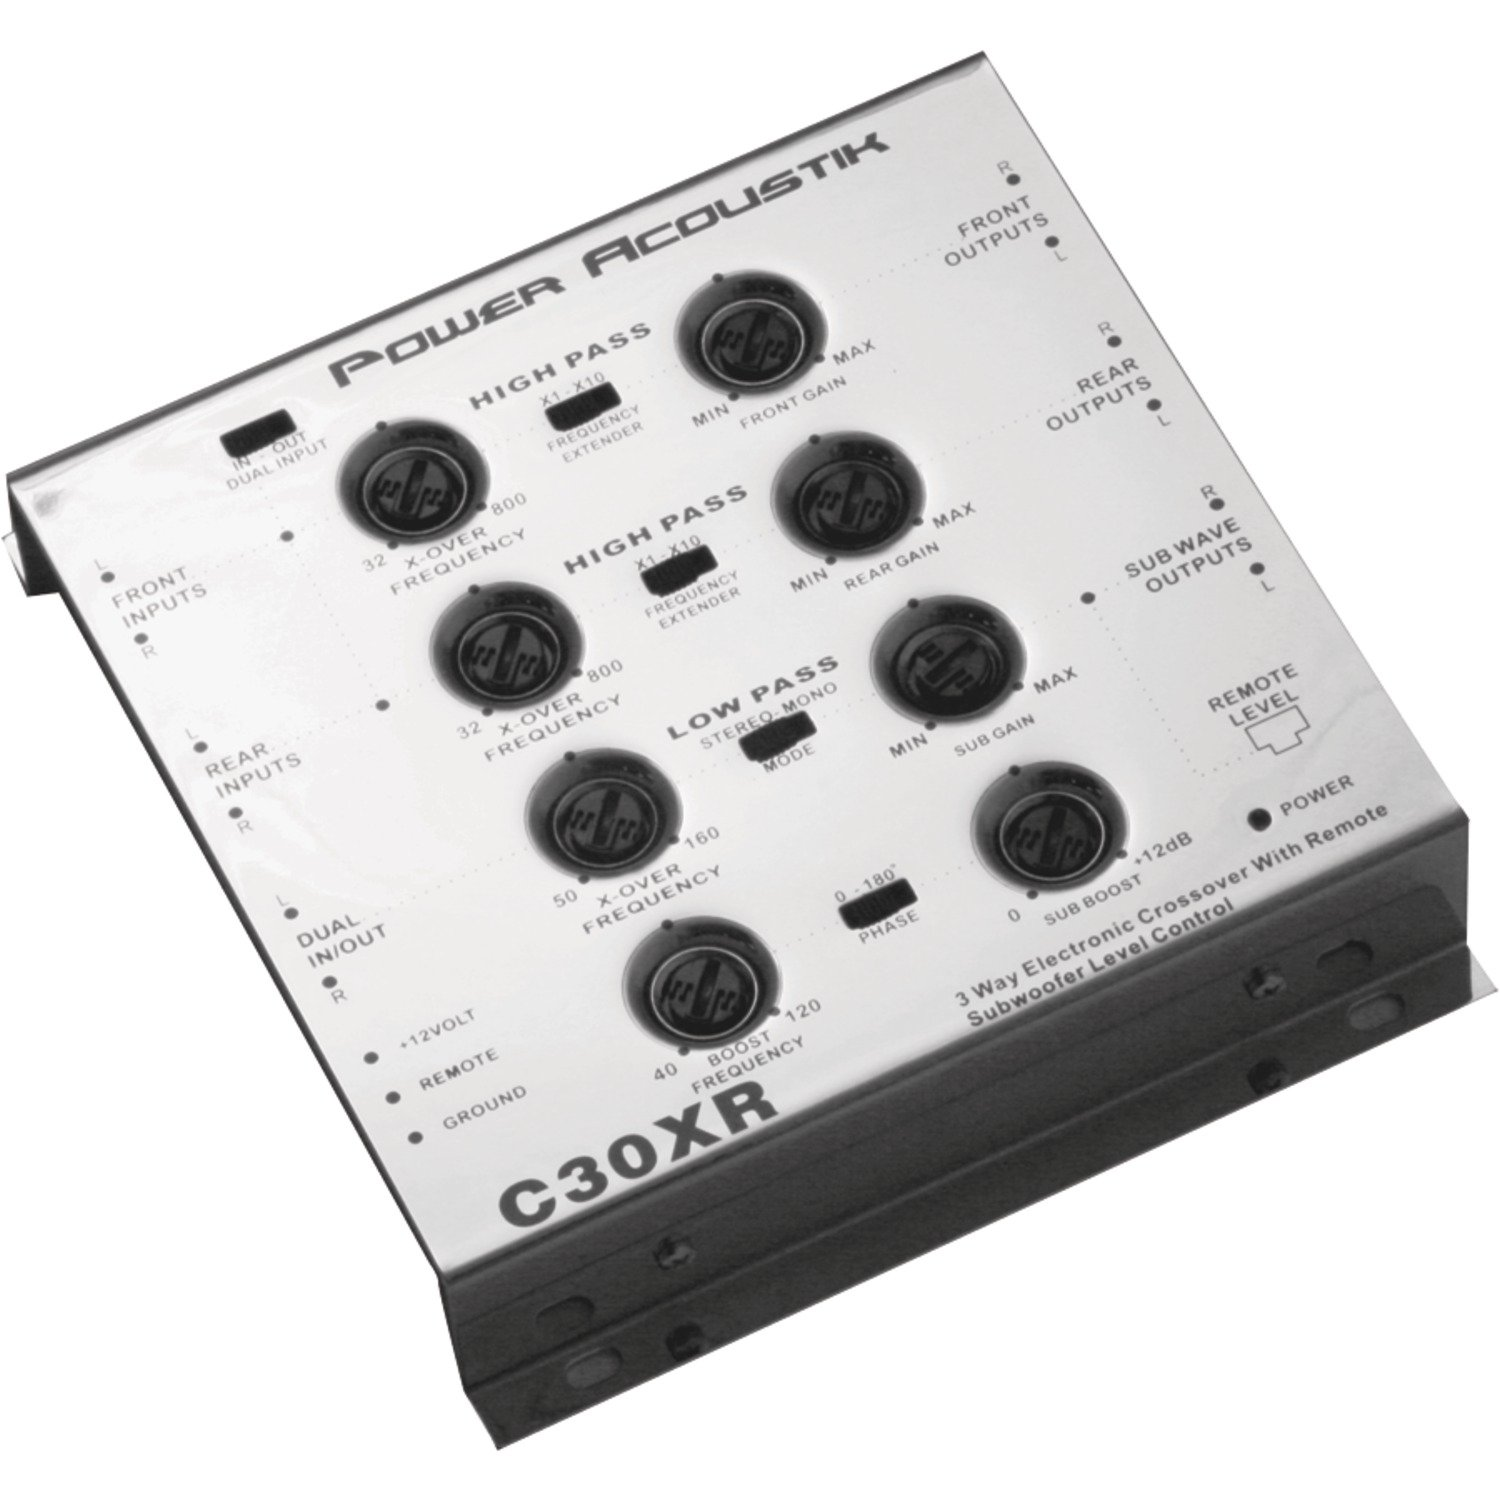 Power Acoustik C30XR 3-Way Electronic Crossover with Remote Dash Mount Bass Knob Control C-30XR